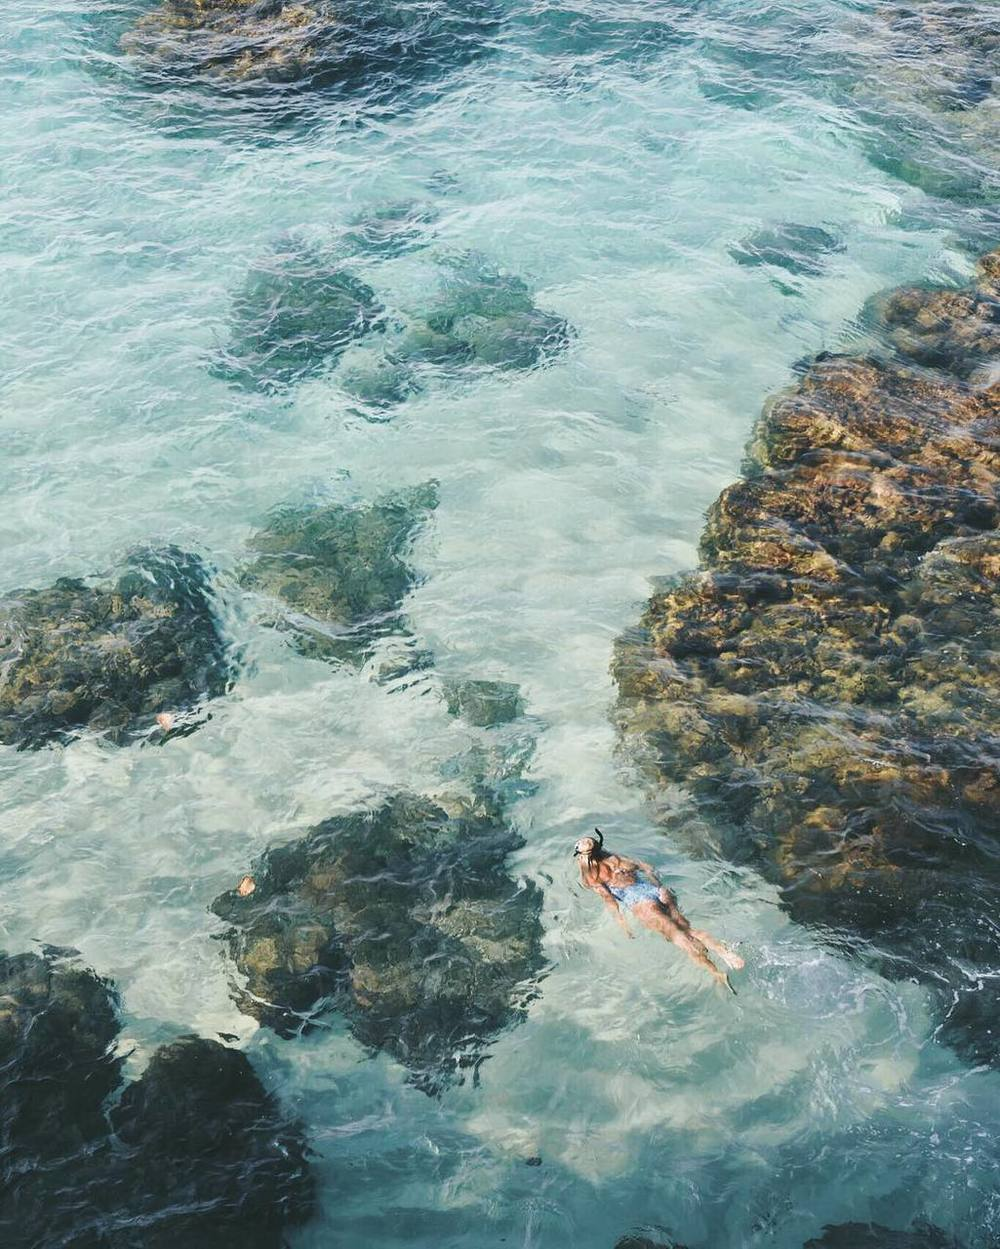 s-ea-life: apodyoopsis: Tropical Bliss ☼ sea's the day